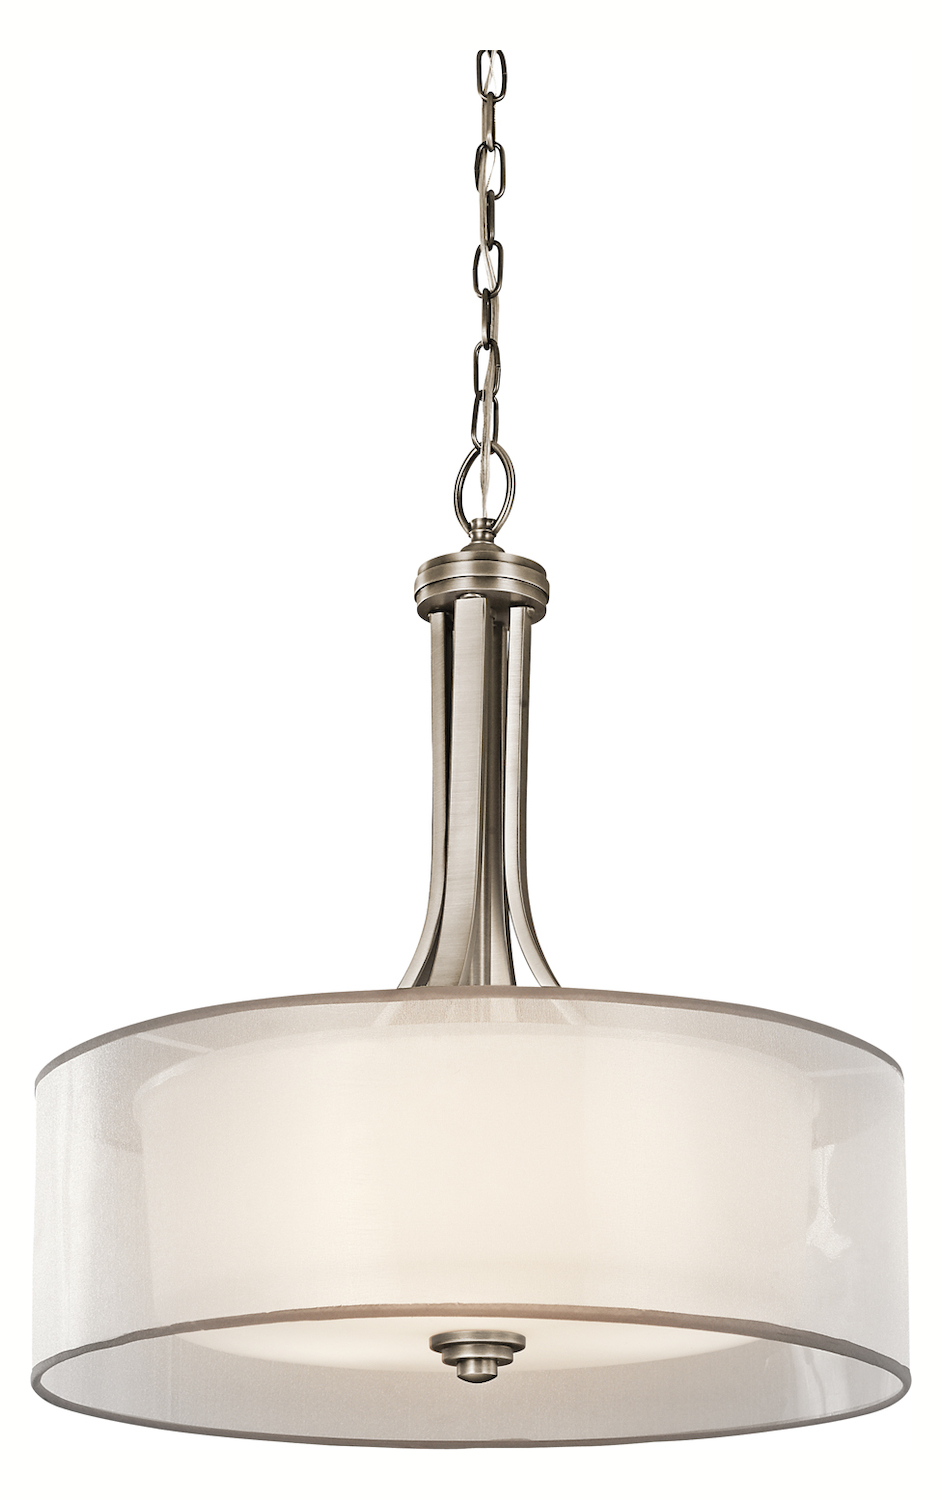 Drum Shaped Pendant Lighting : Kichler antique pewter lacey bulb indoor pendant with